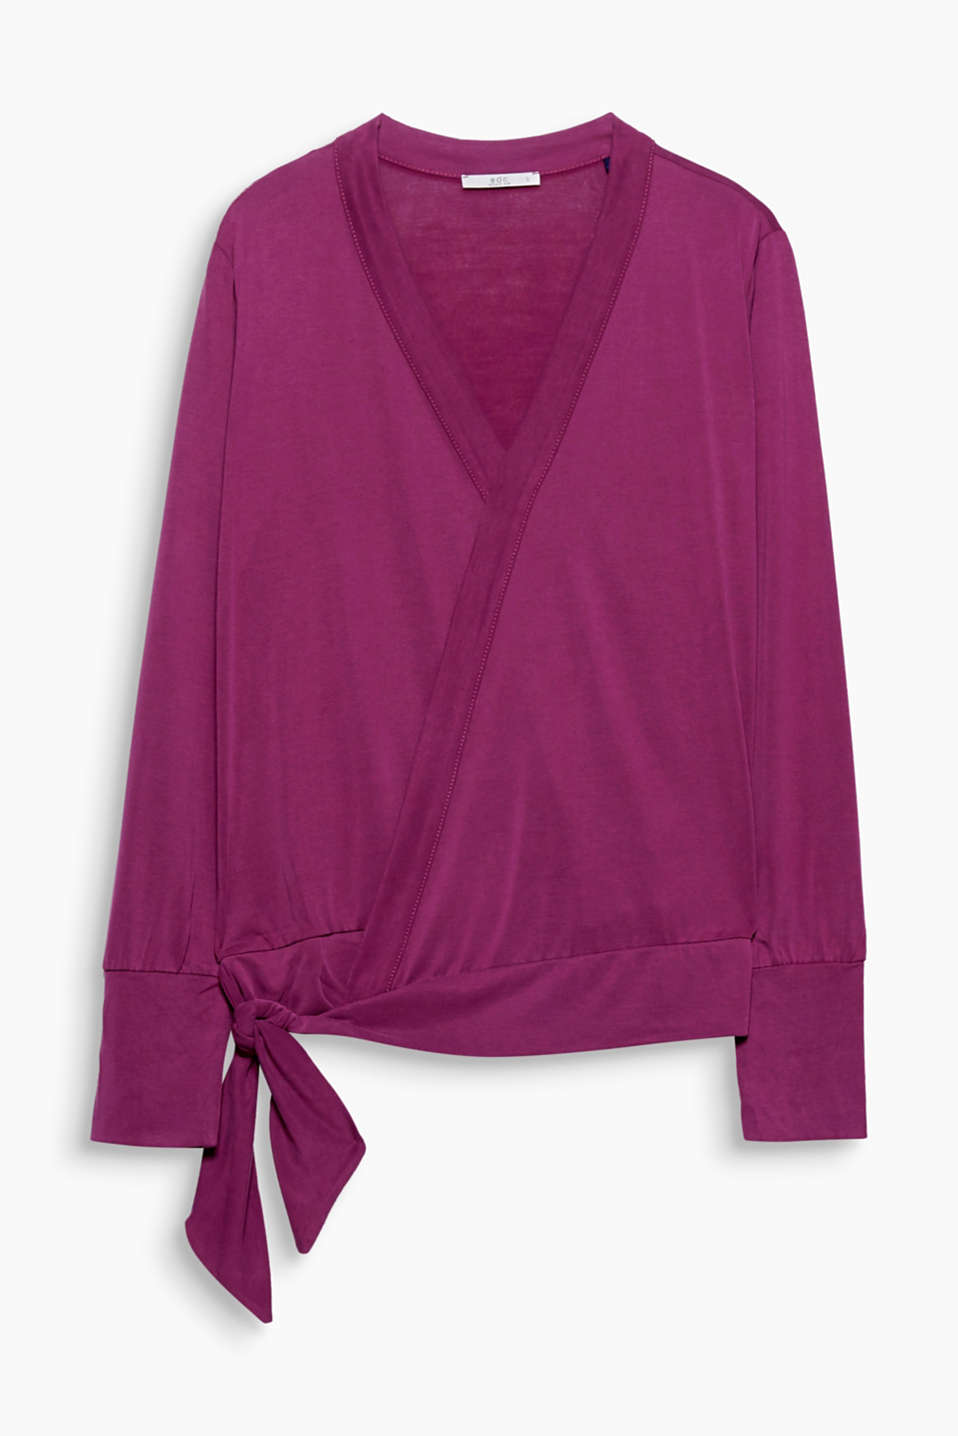 You are guaranteed to be wrapped up well in this long sleeve top in silky soft jersey.